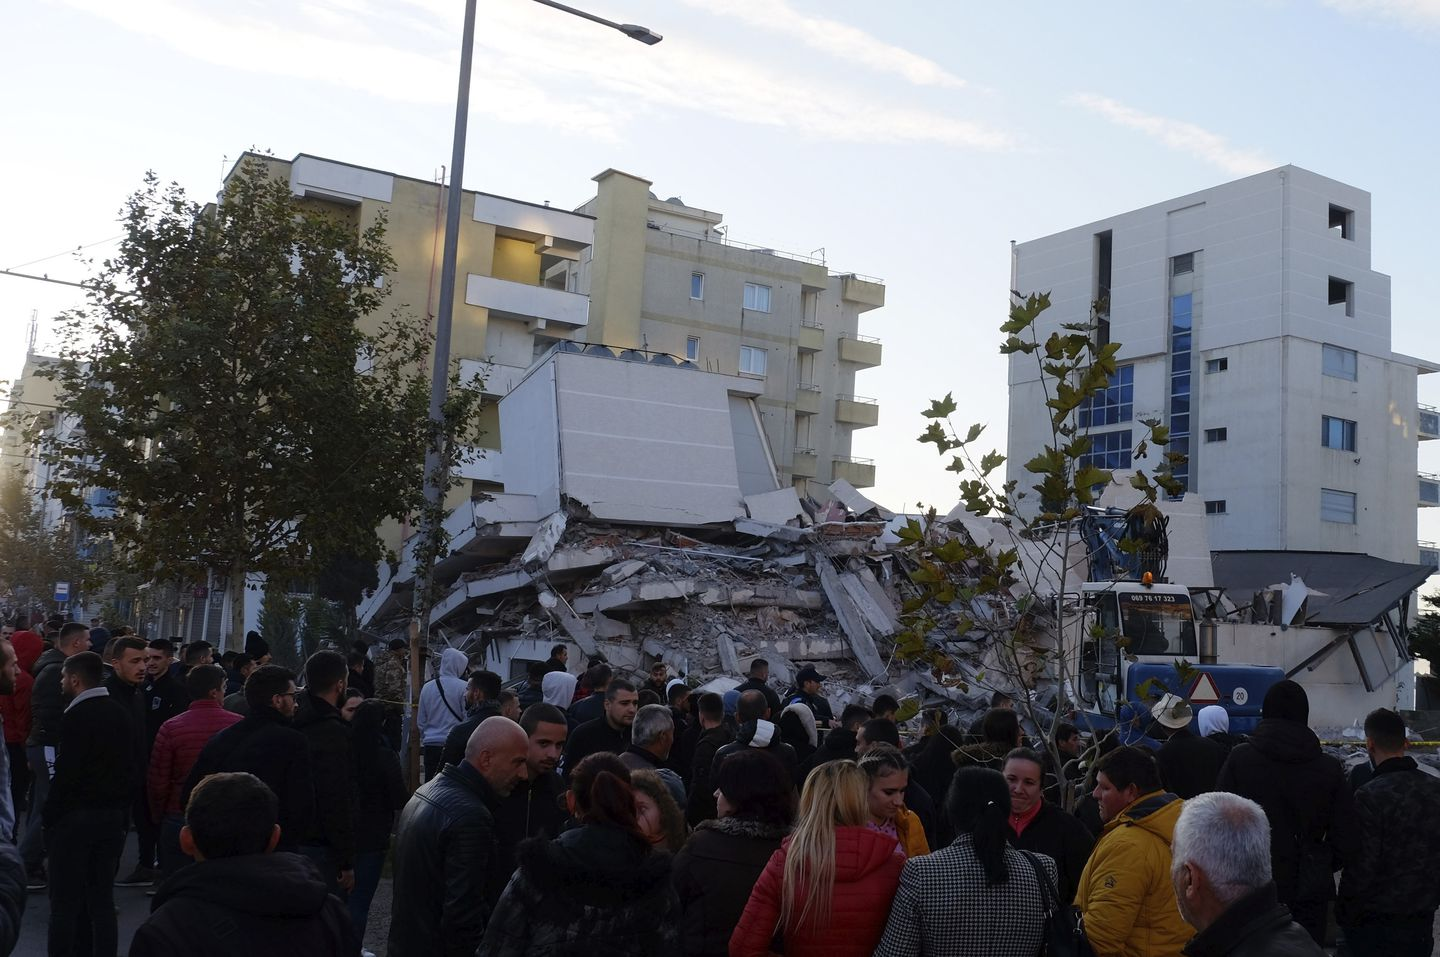 People stand near a damaged building after a magnitude 6.4 earthquake in Durres, western Albania, on Tuesday. (Hektor Pustina/AP)